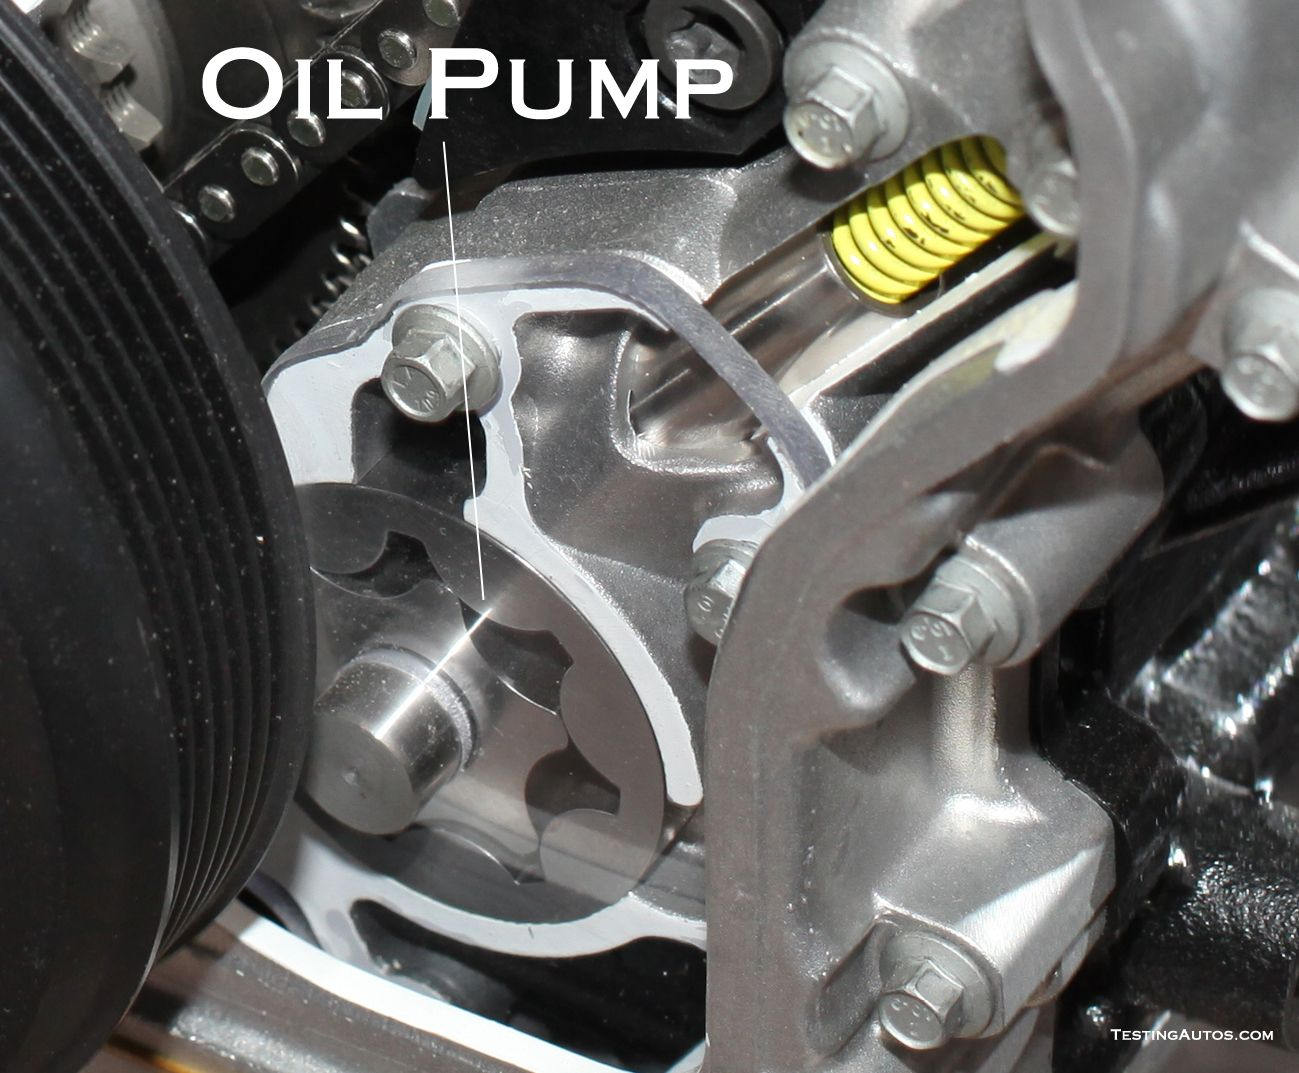 Car Glossary Engine Oil Pump How Often Should You Change The Oil